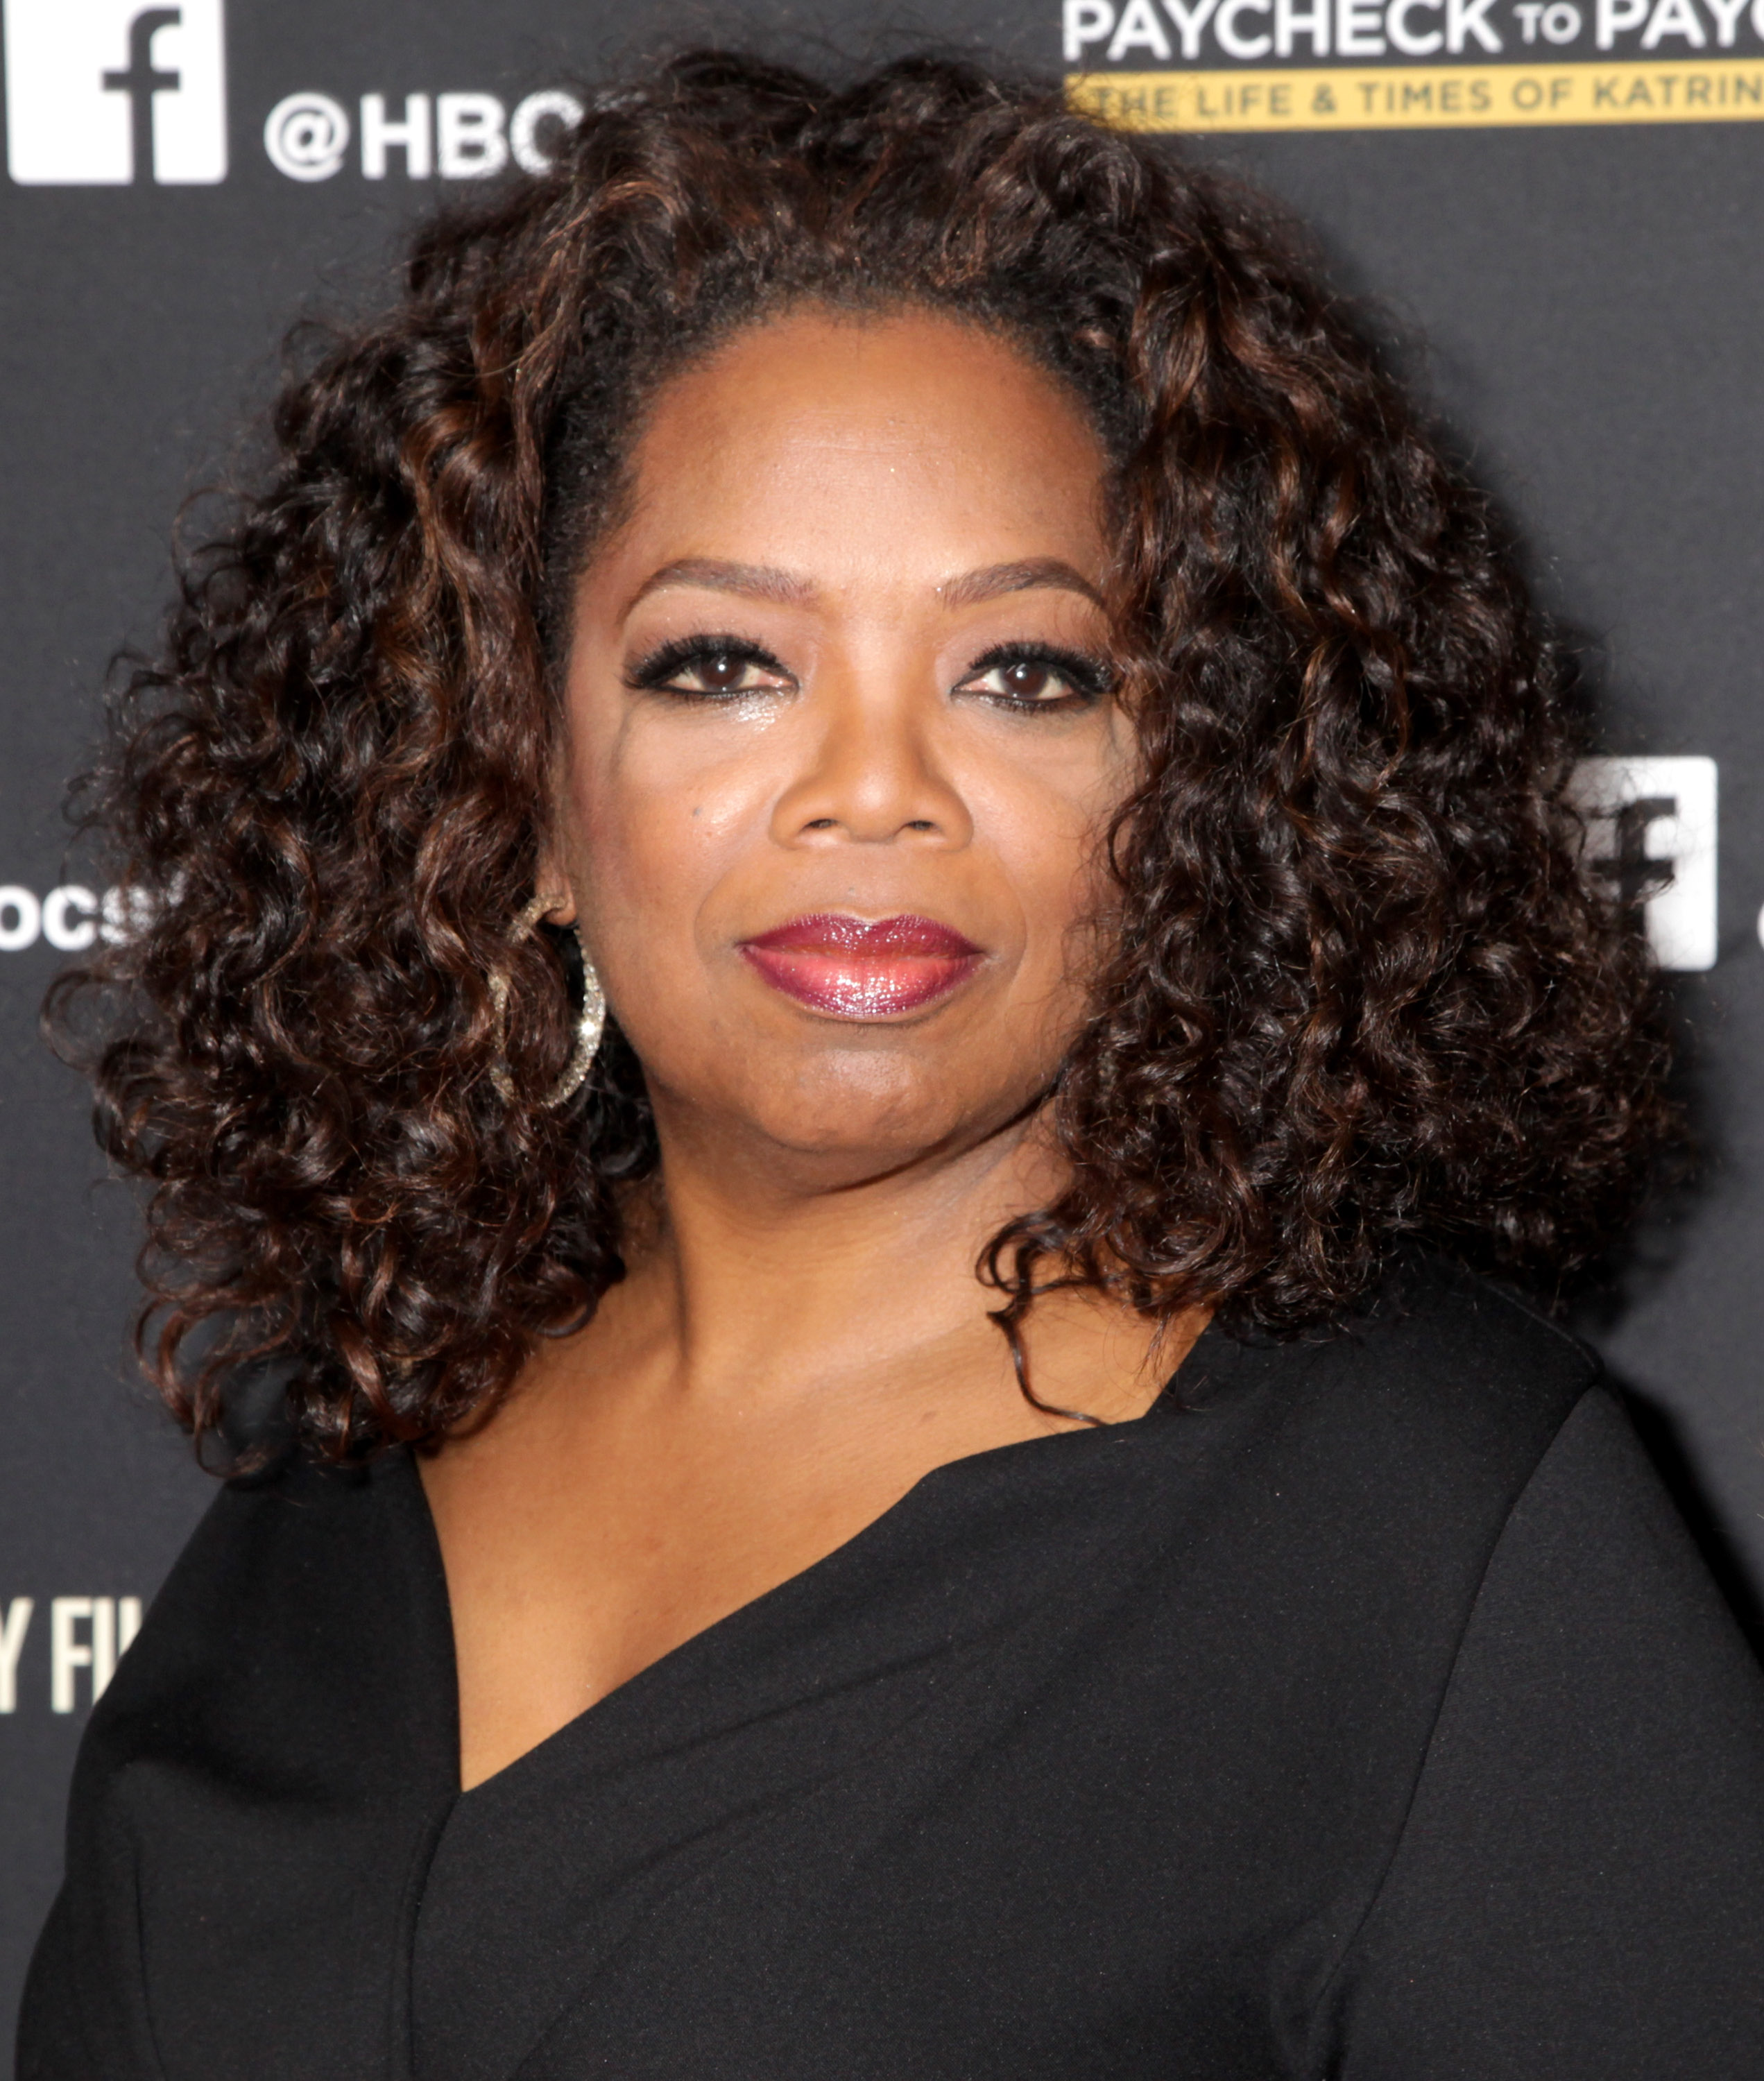 Oprah attends the Los Angeles premiere of HBO Documentary Films  Paycheck To Paycheck  at the Linwood Dunn Theater at the Pickford Center for Motion Study on March 10, 2014 in Hollywood, California.